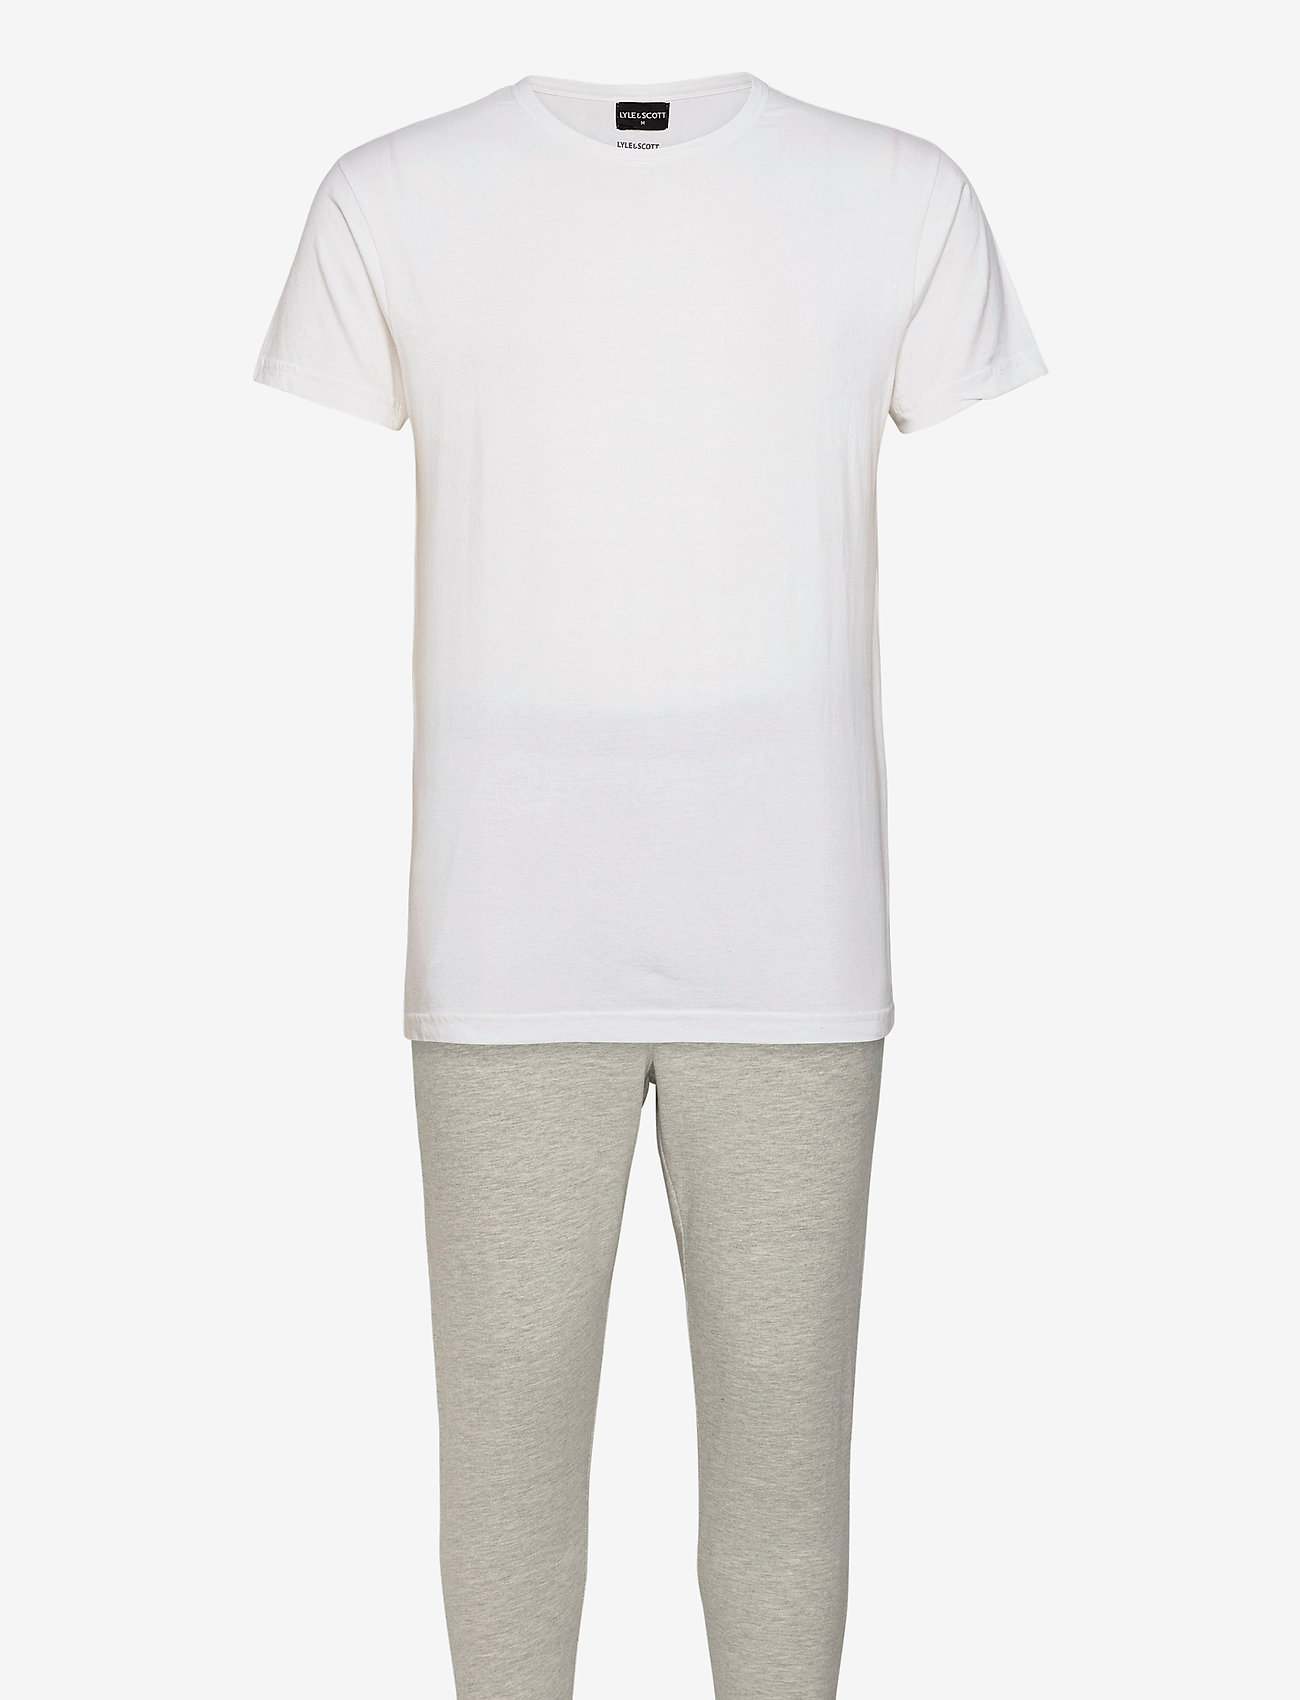 Lyle & Scott - BENJAMIN - pyjama's - bright white/light grey marl - 0